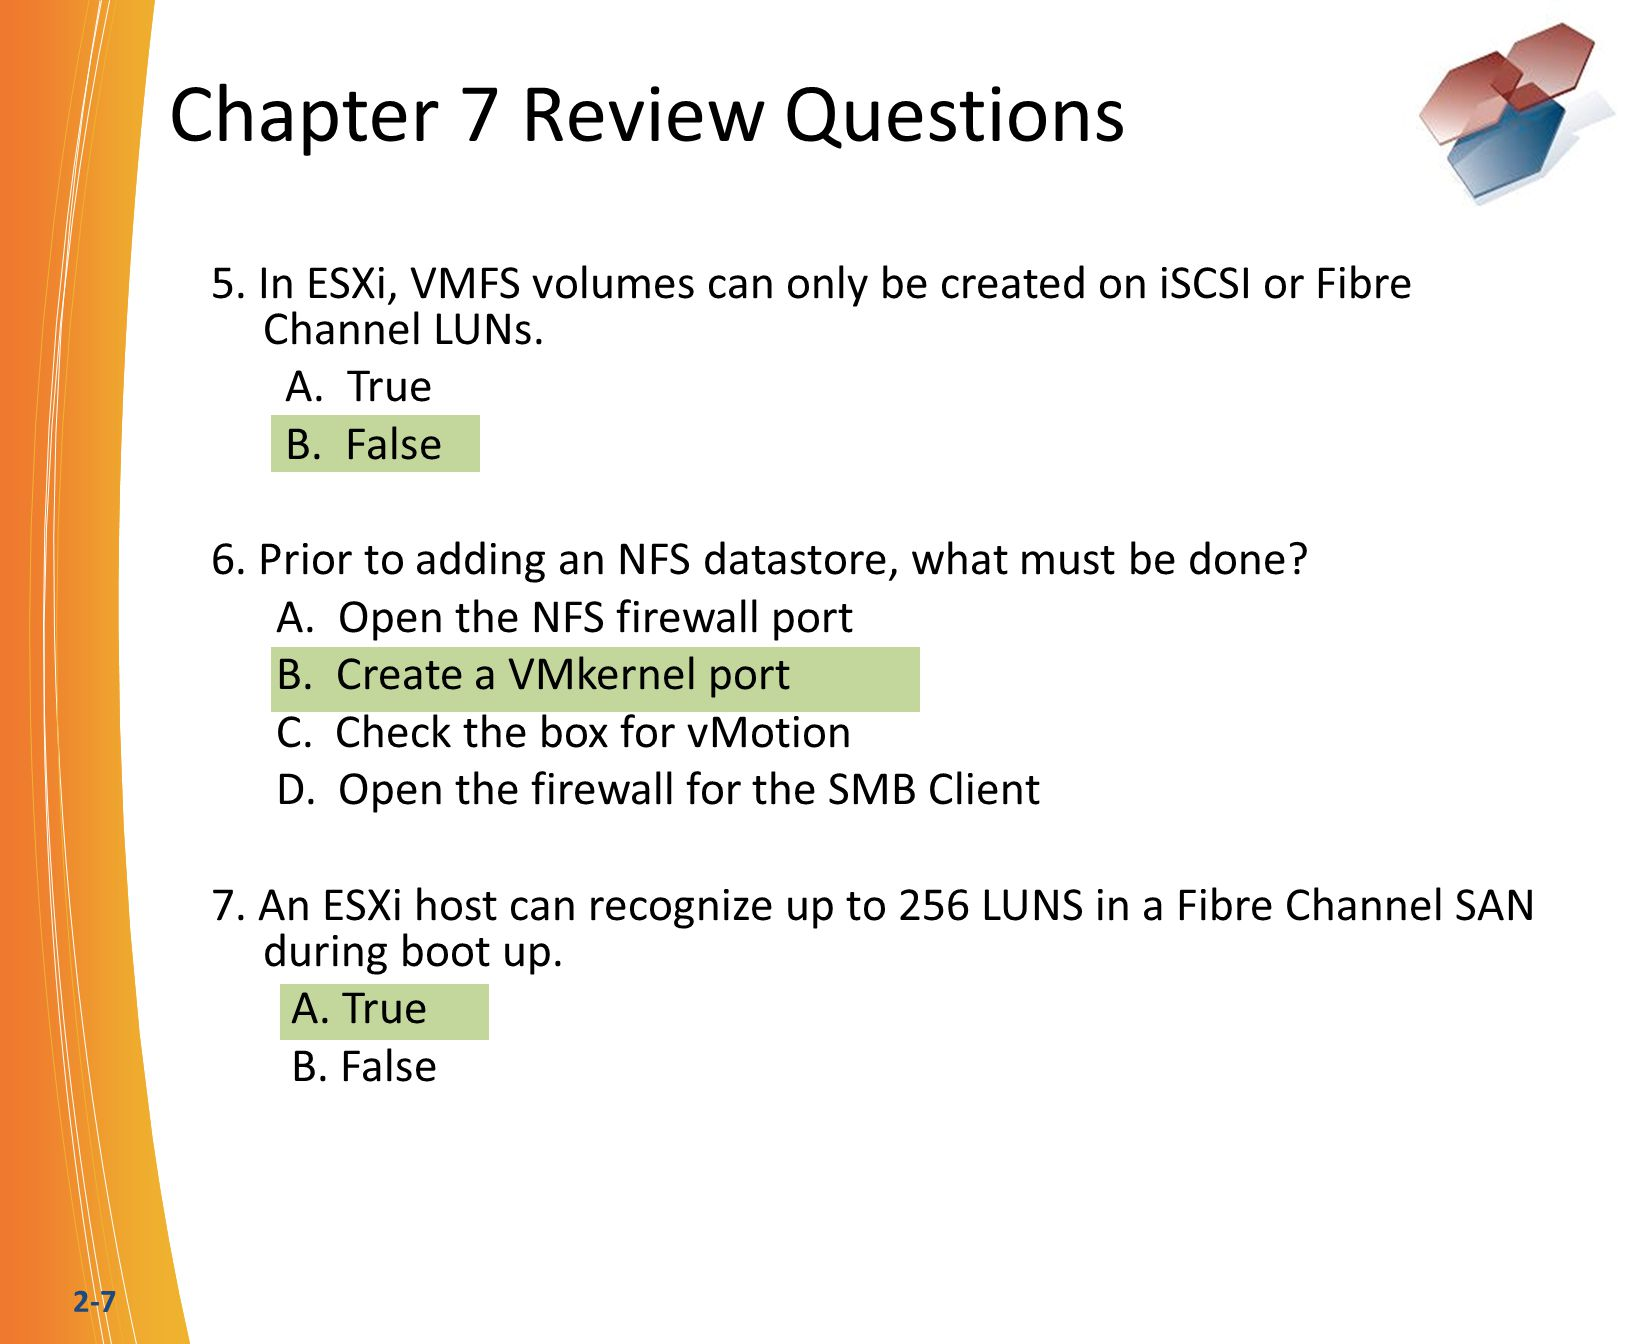 2-7 Chapter 7 Review Questions 5. In ESXi, VMFS volumes can only be created on iSCSI or Fibre Channel LUNs. A. True B. False 6. Prior to adding an NFS